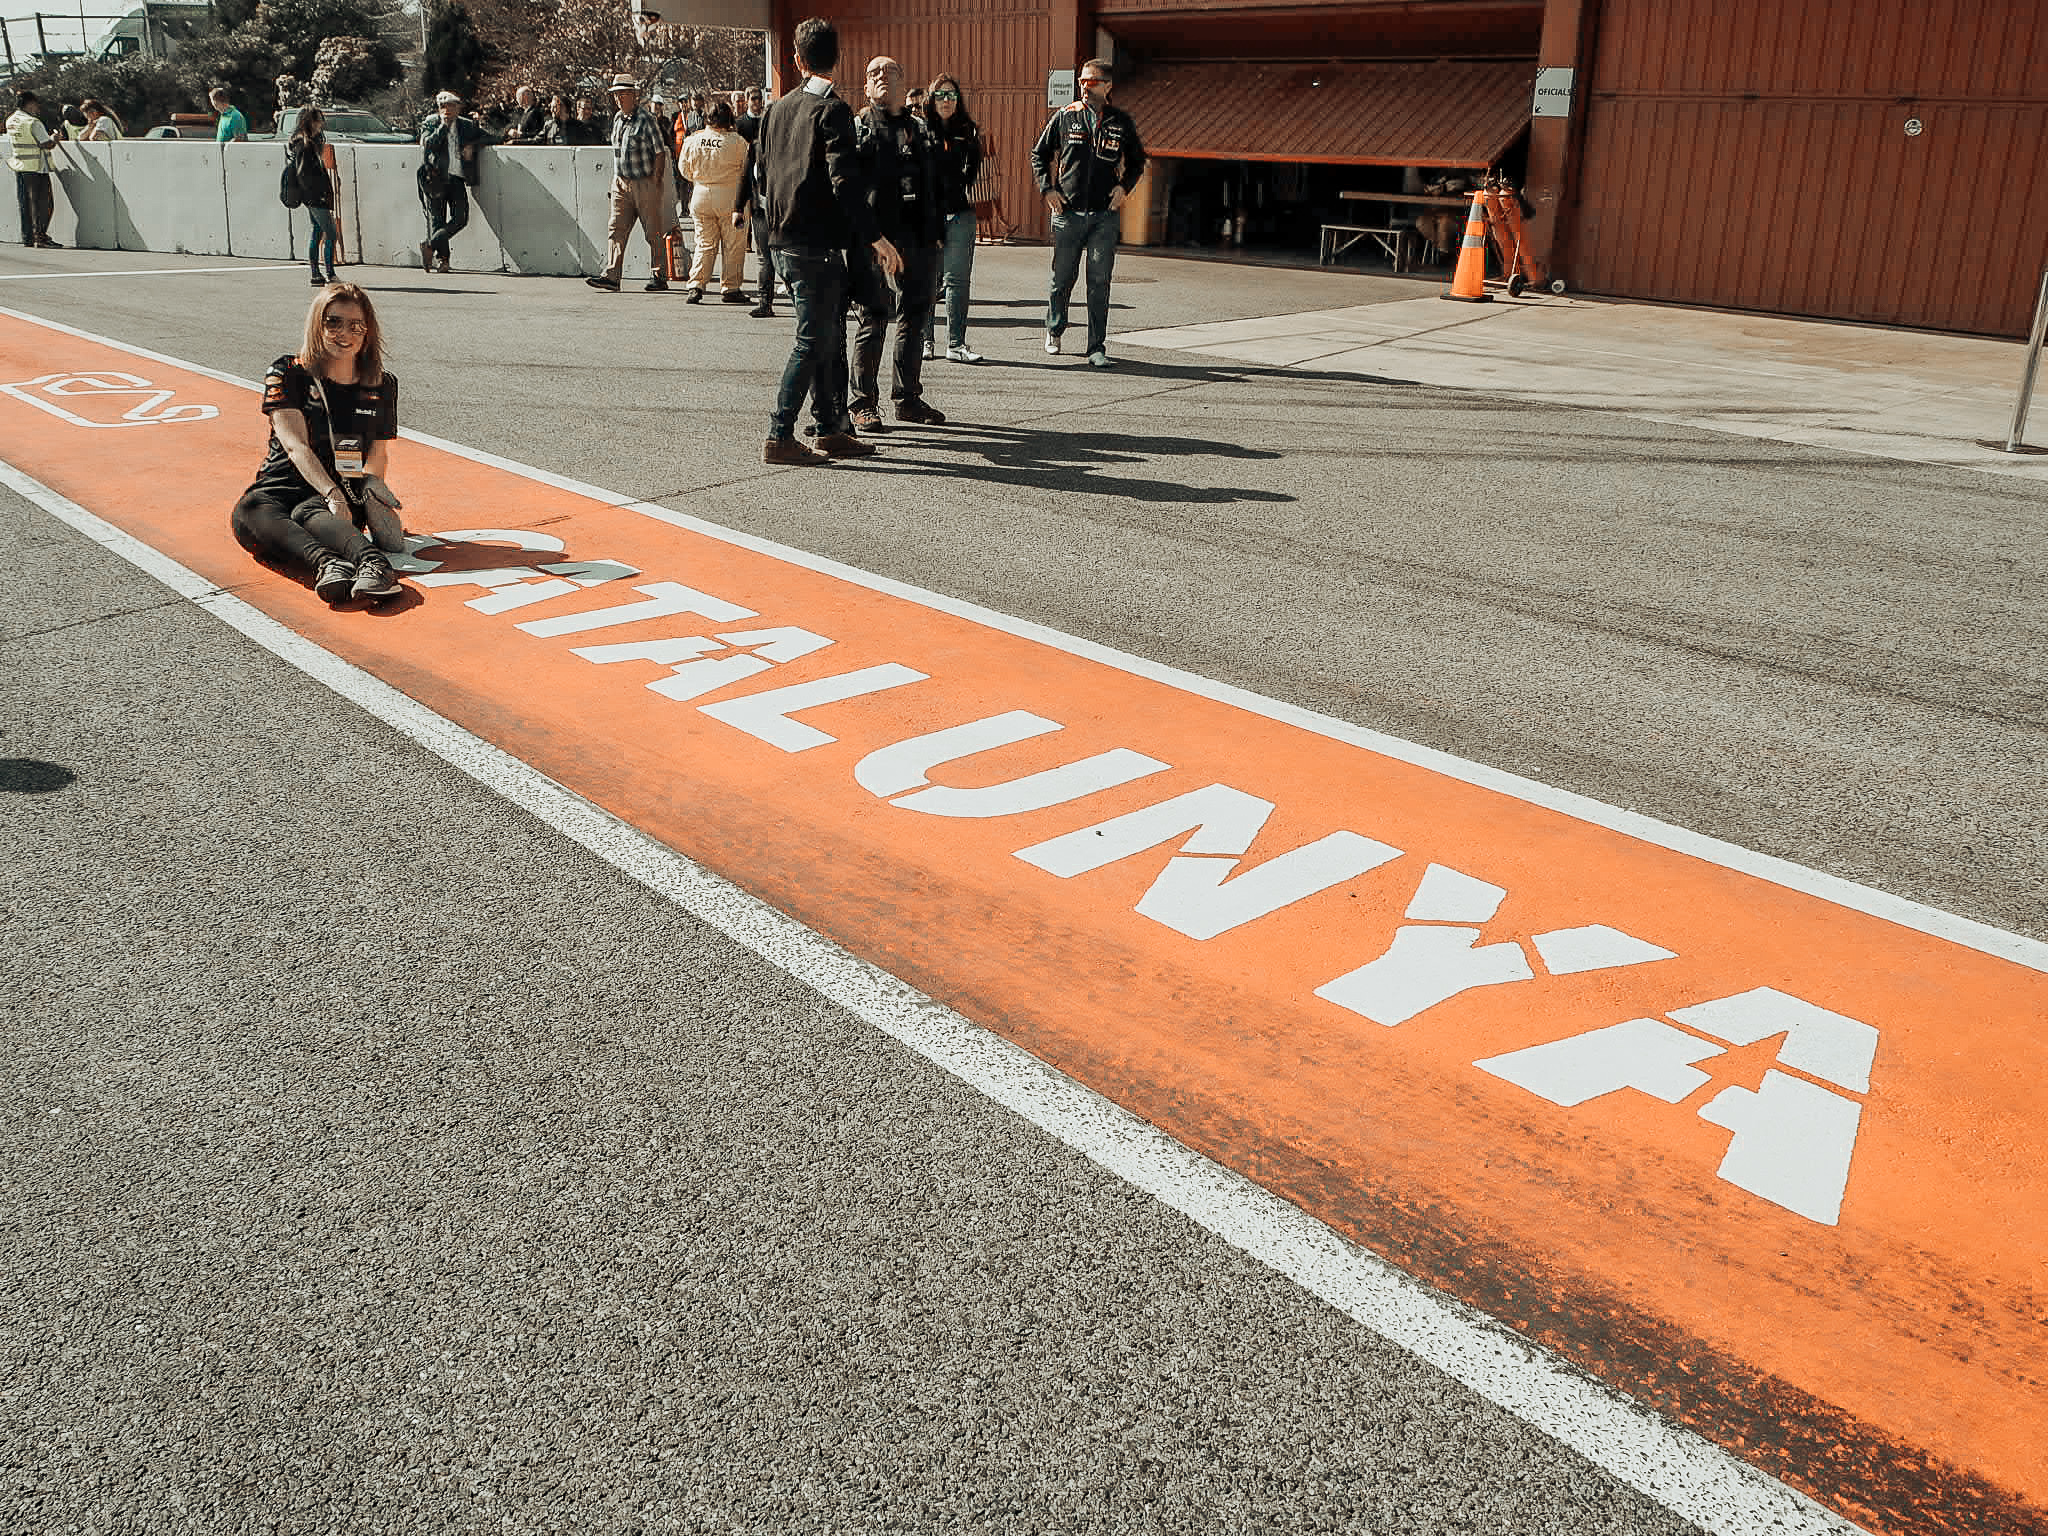 Barcelona Photo Diary - Day Two Pit Lane Circuit de Catalunya